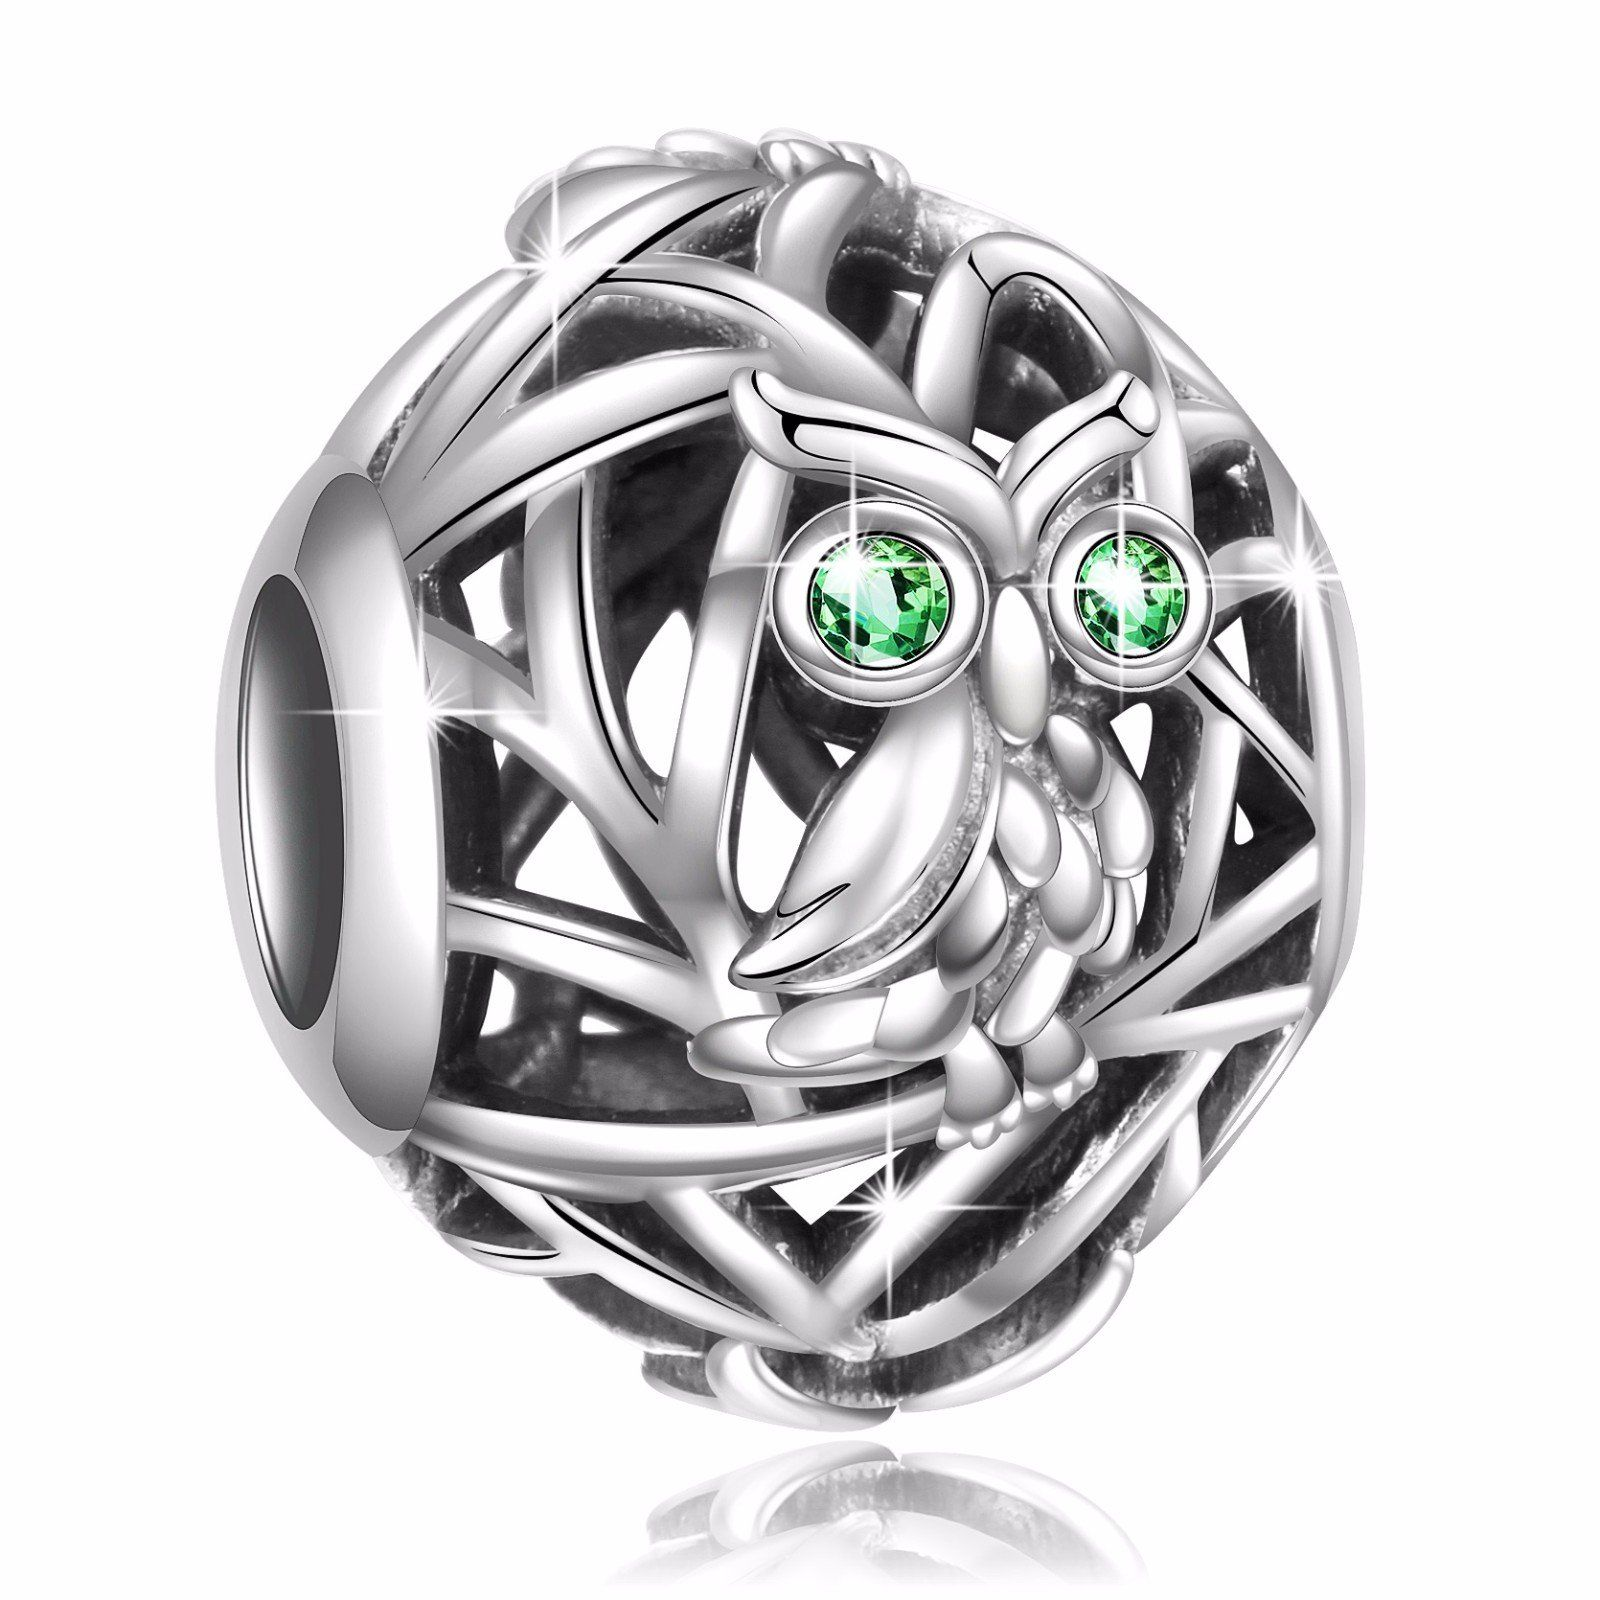 c9bd962a1 925 Sterling Silver Openwork Owl Charms with Zirconia Bead for European  Snake Chain Bracelets. Perfect